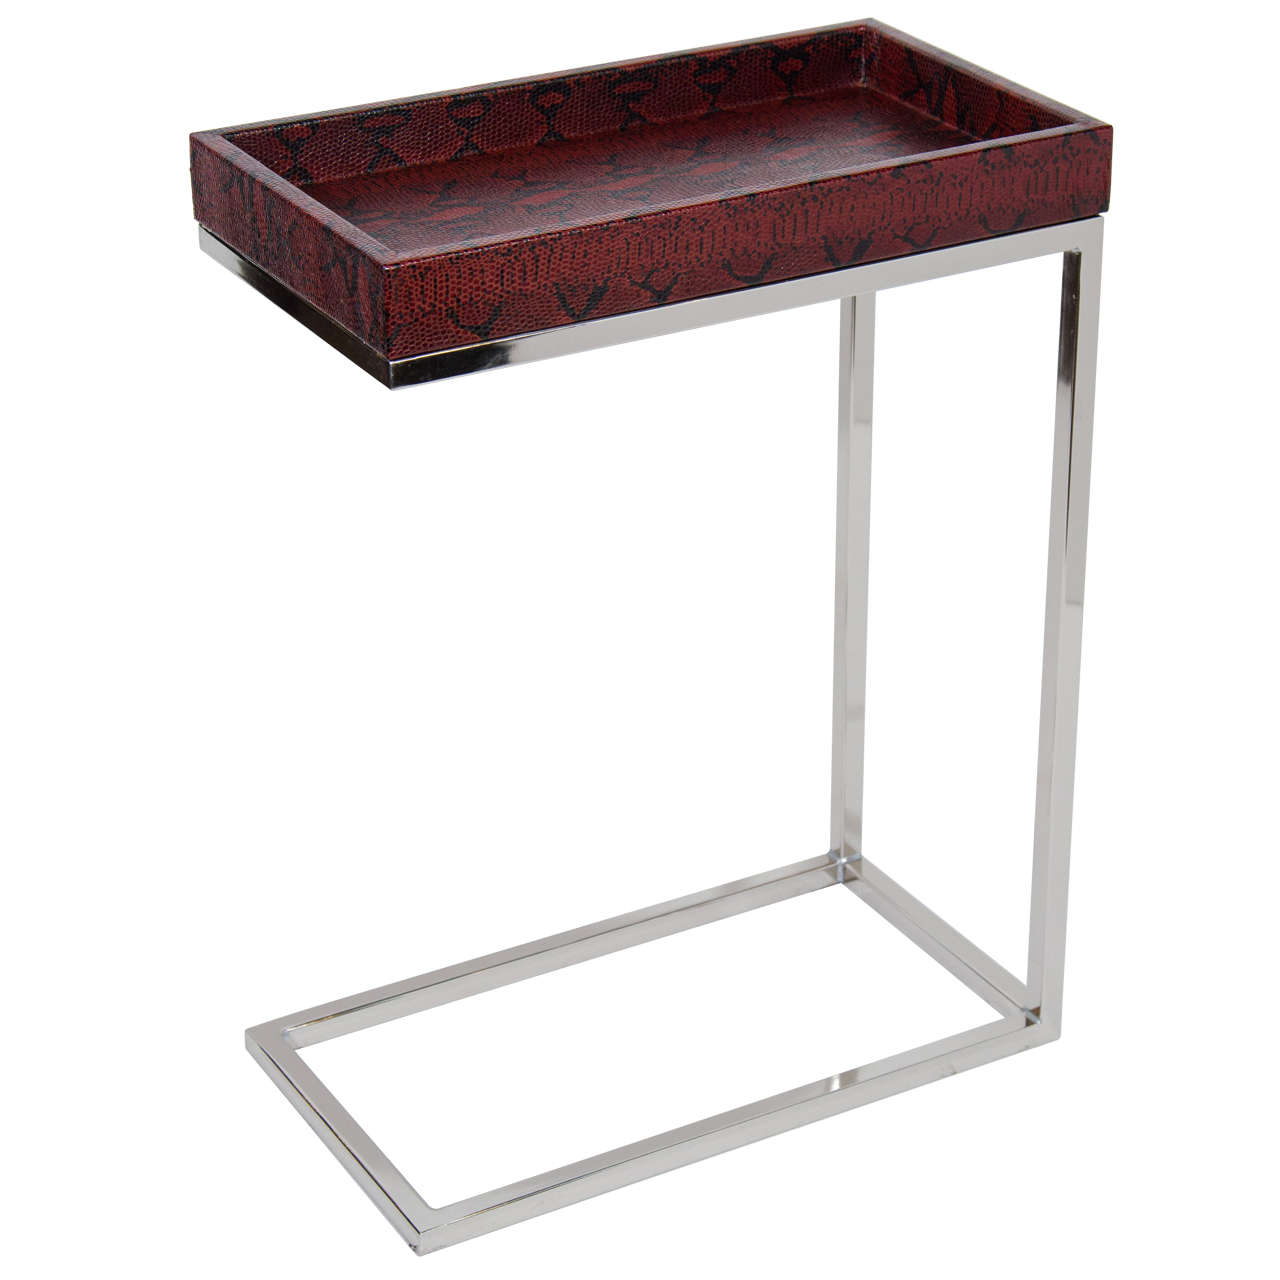 Amusing Design Of The Silver Legs With Brown Wooden Tops As Narrow Side Table For